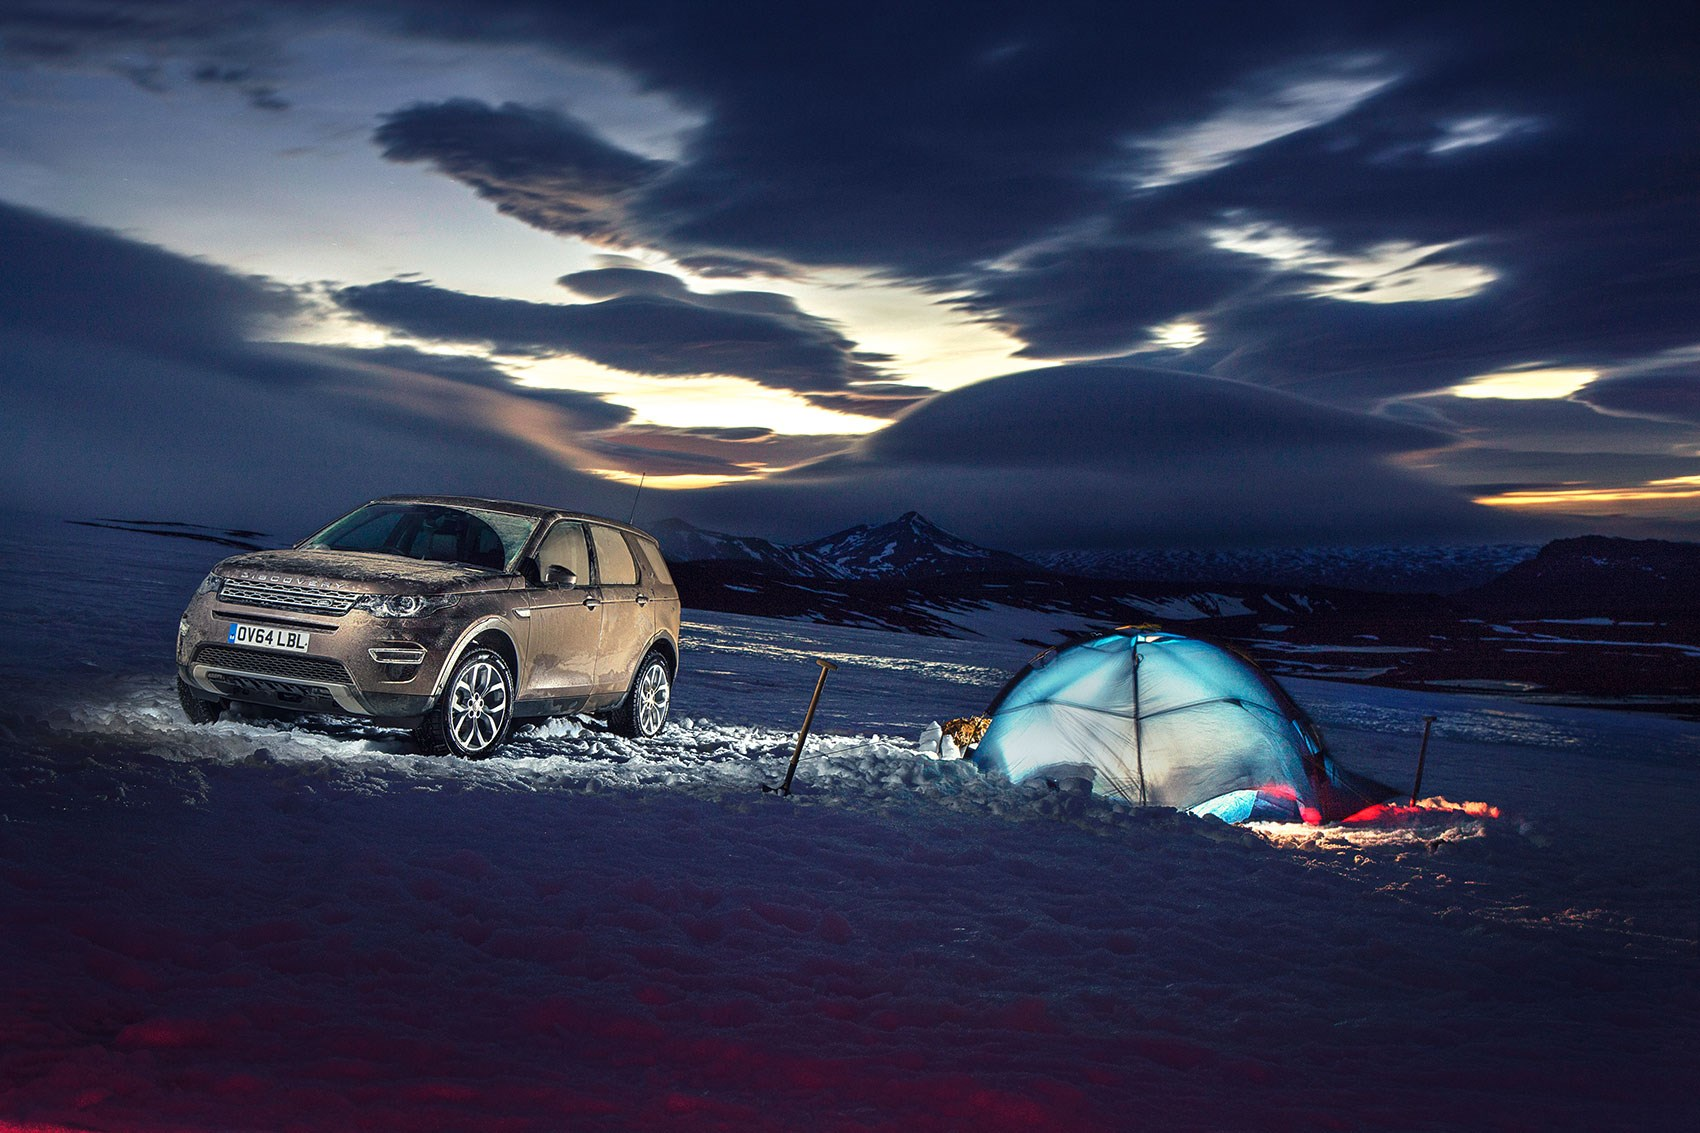 Taking a Land Rover Discovery Sport camping on a glacier